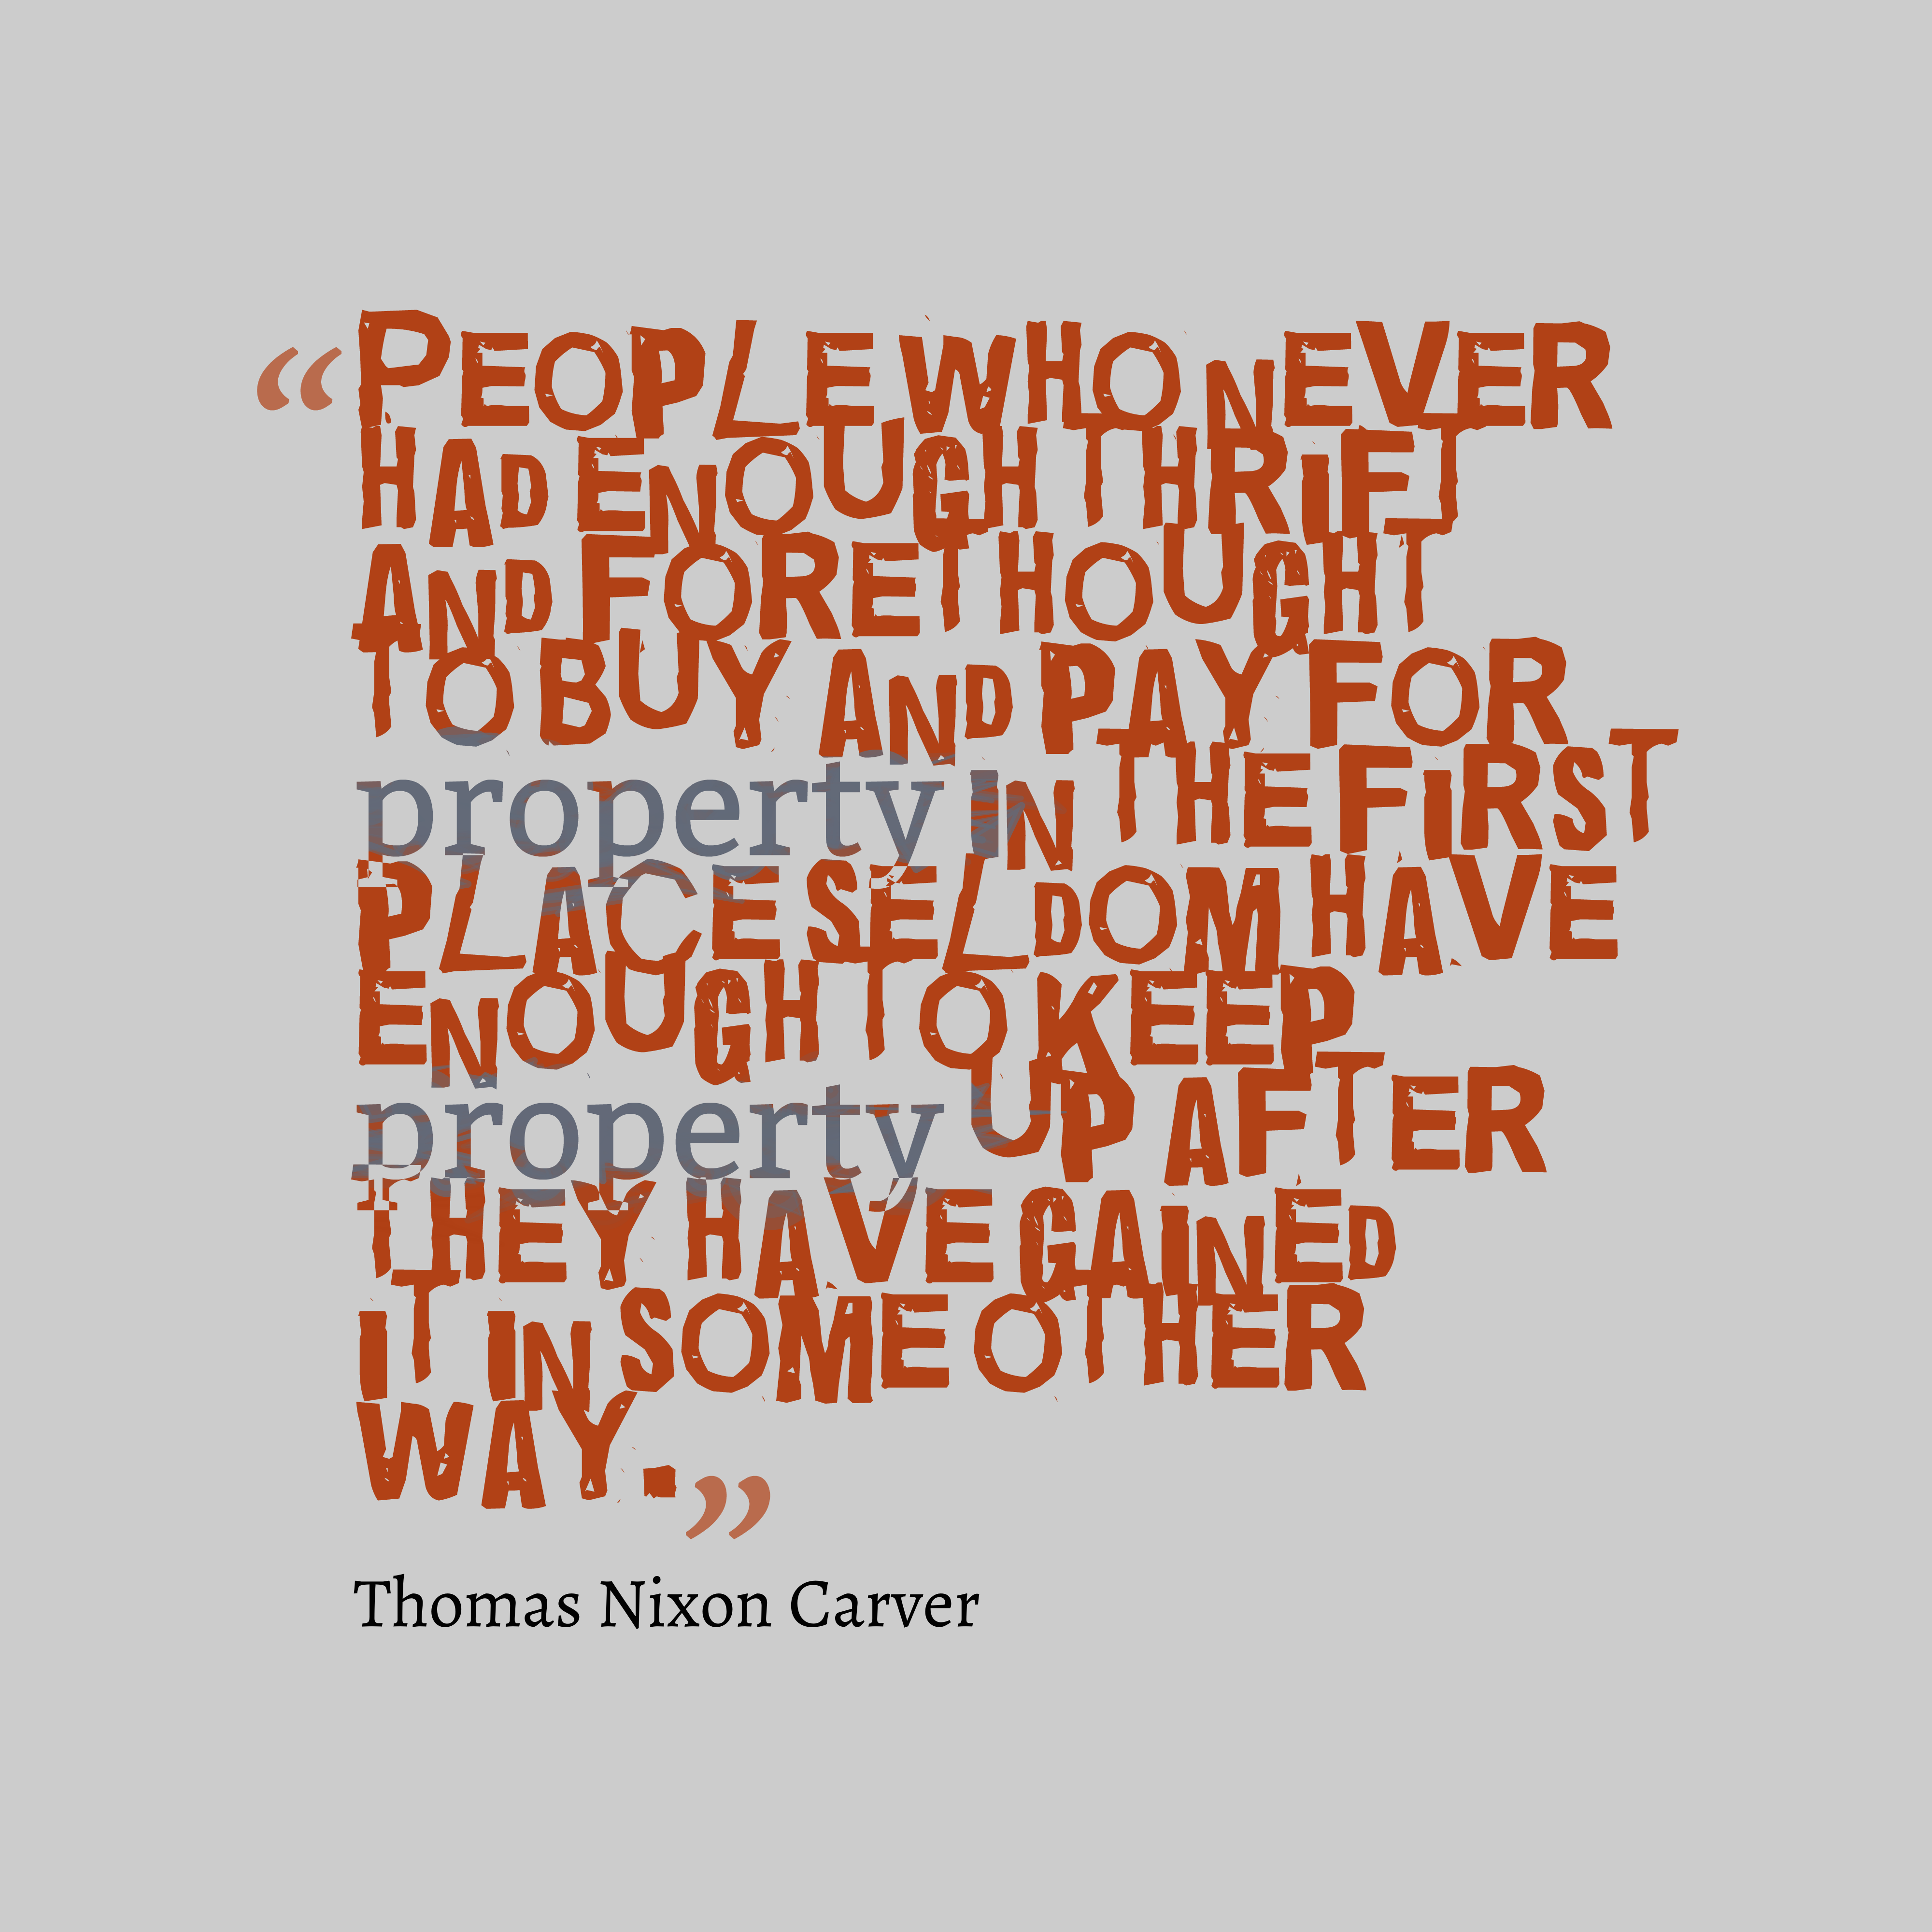 Thomas Nixon Carver Quote About Property